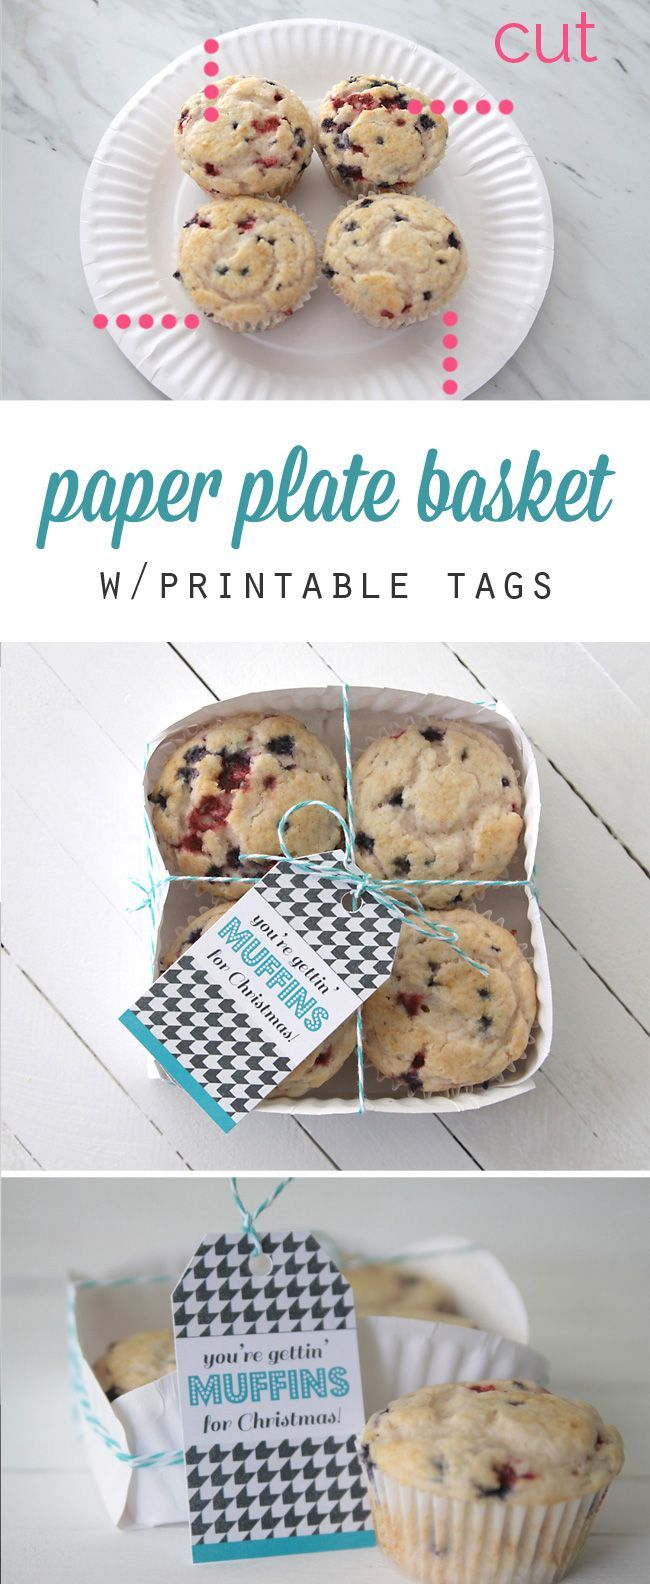 Make four quick cuts in a paper plate and turn it into a super cute treat basket!